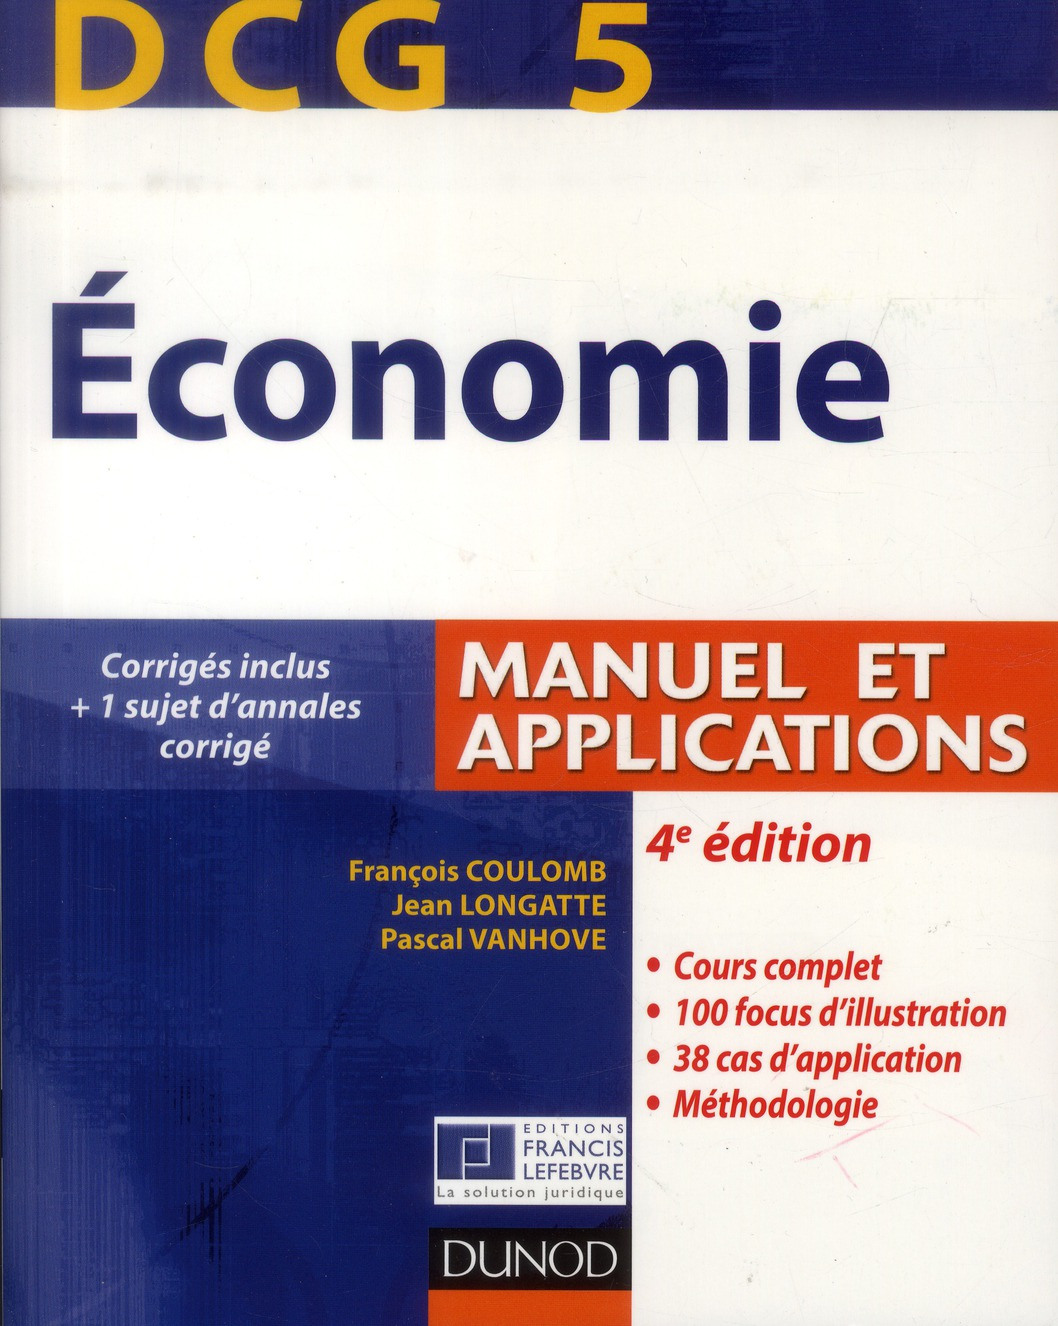 Dcg 5 ; Economie ; Manuel Et Applications, Corriges Inclus (4e Edition)